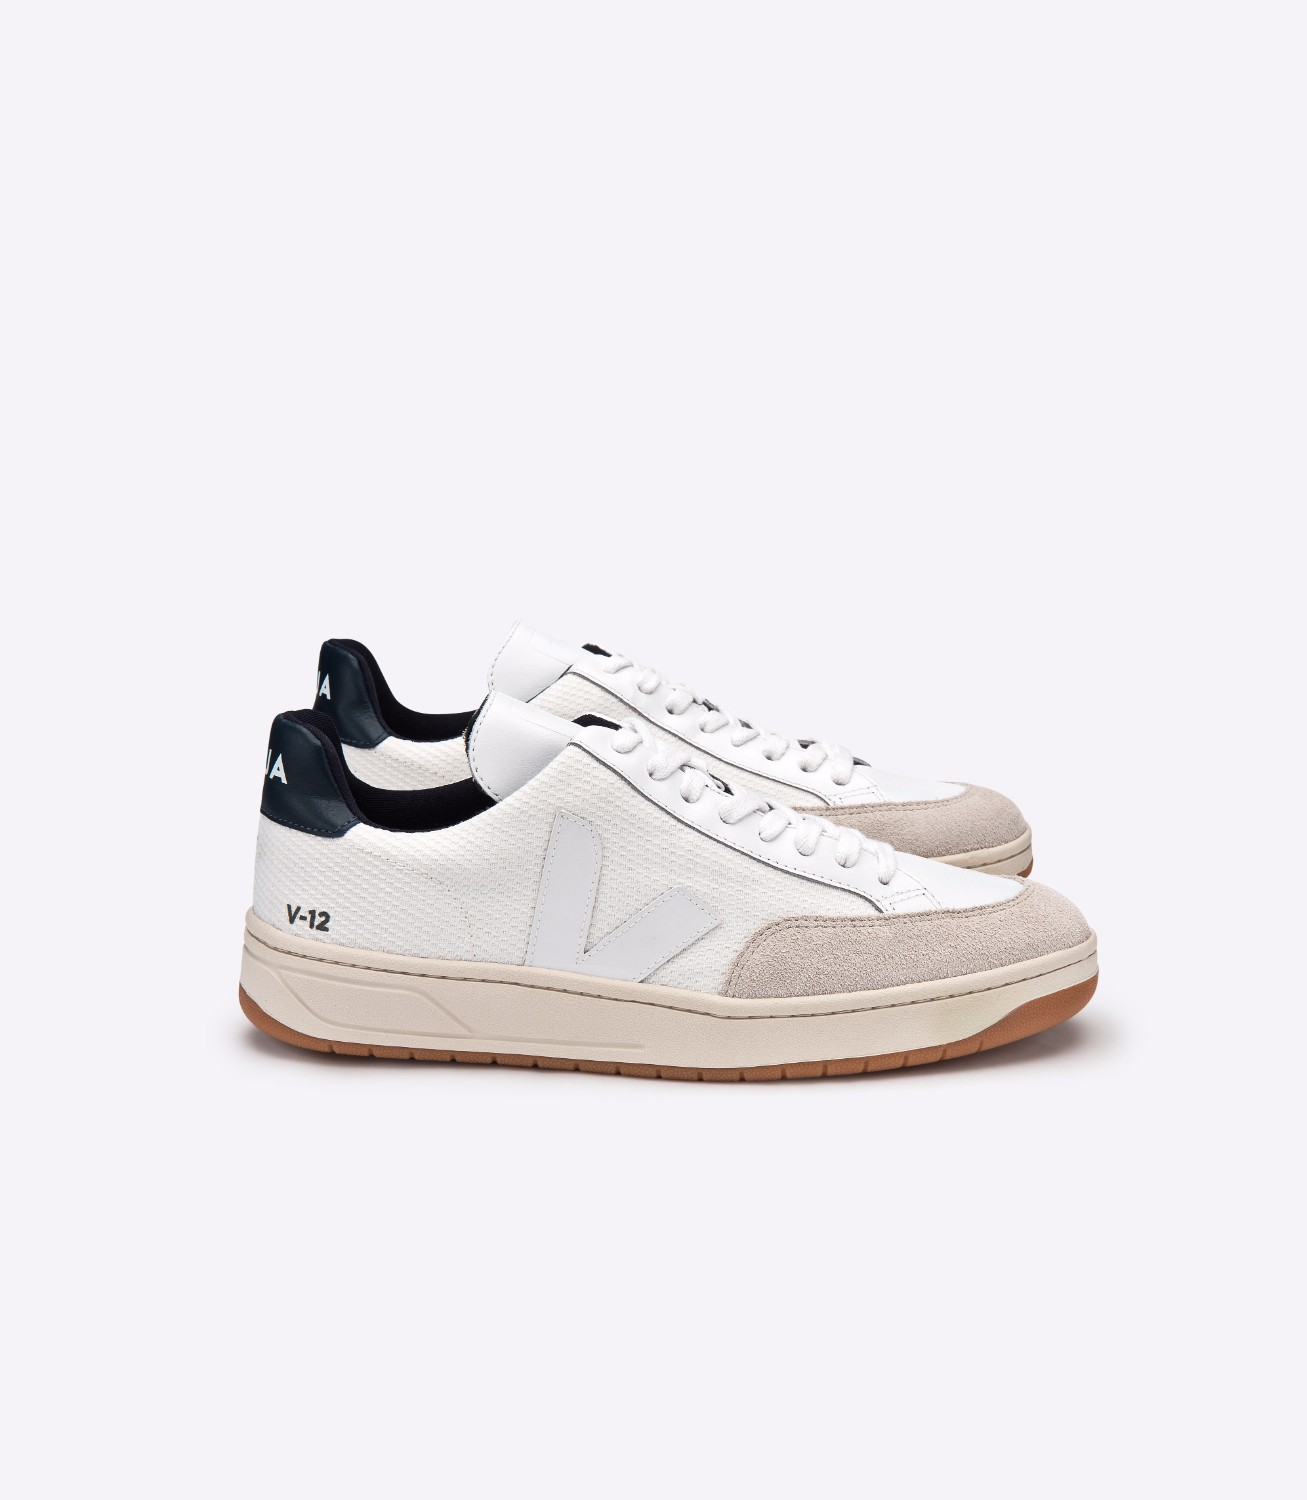 Veja Debuts A New Sneaker Silhouette  Adds Disco Flavor